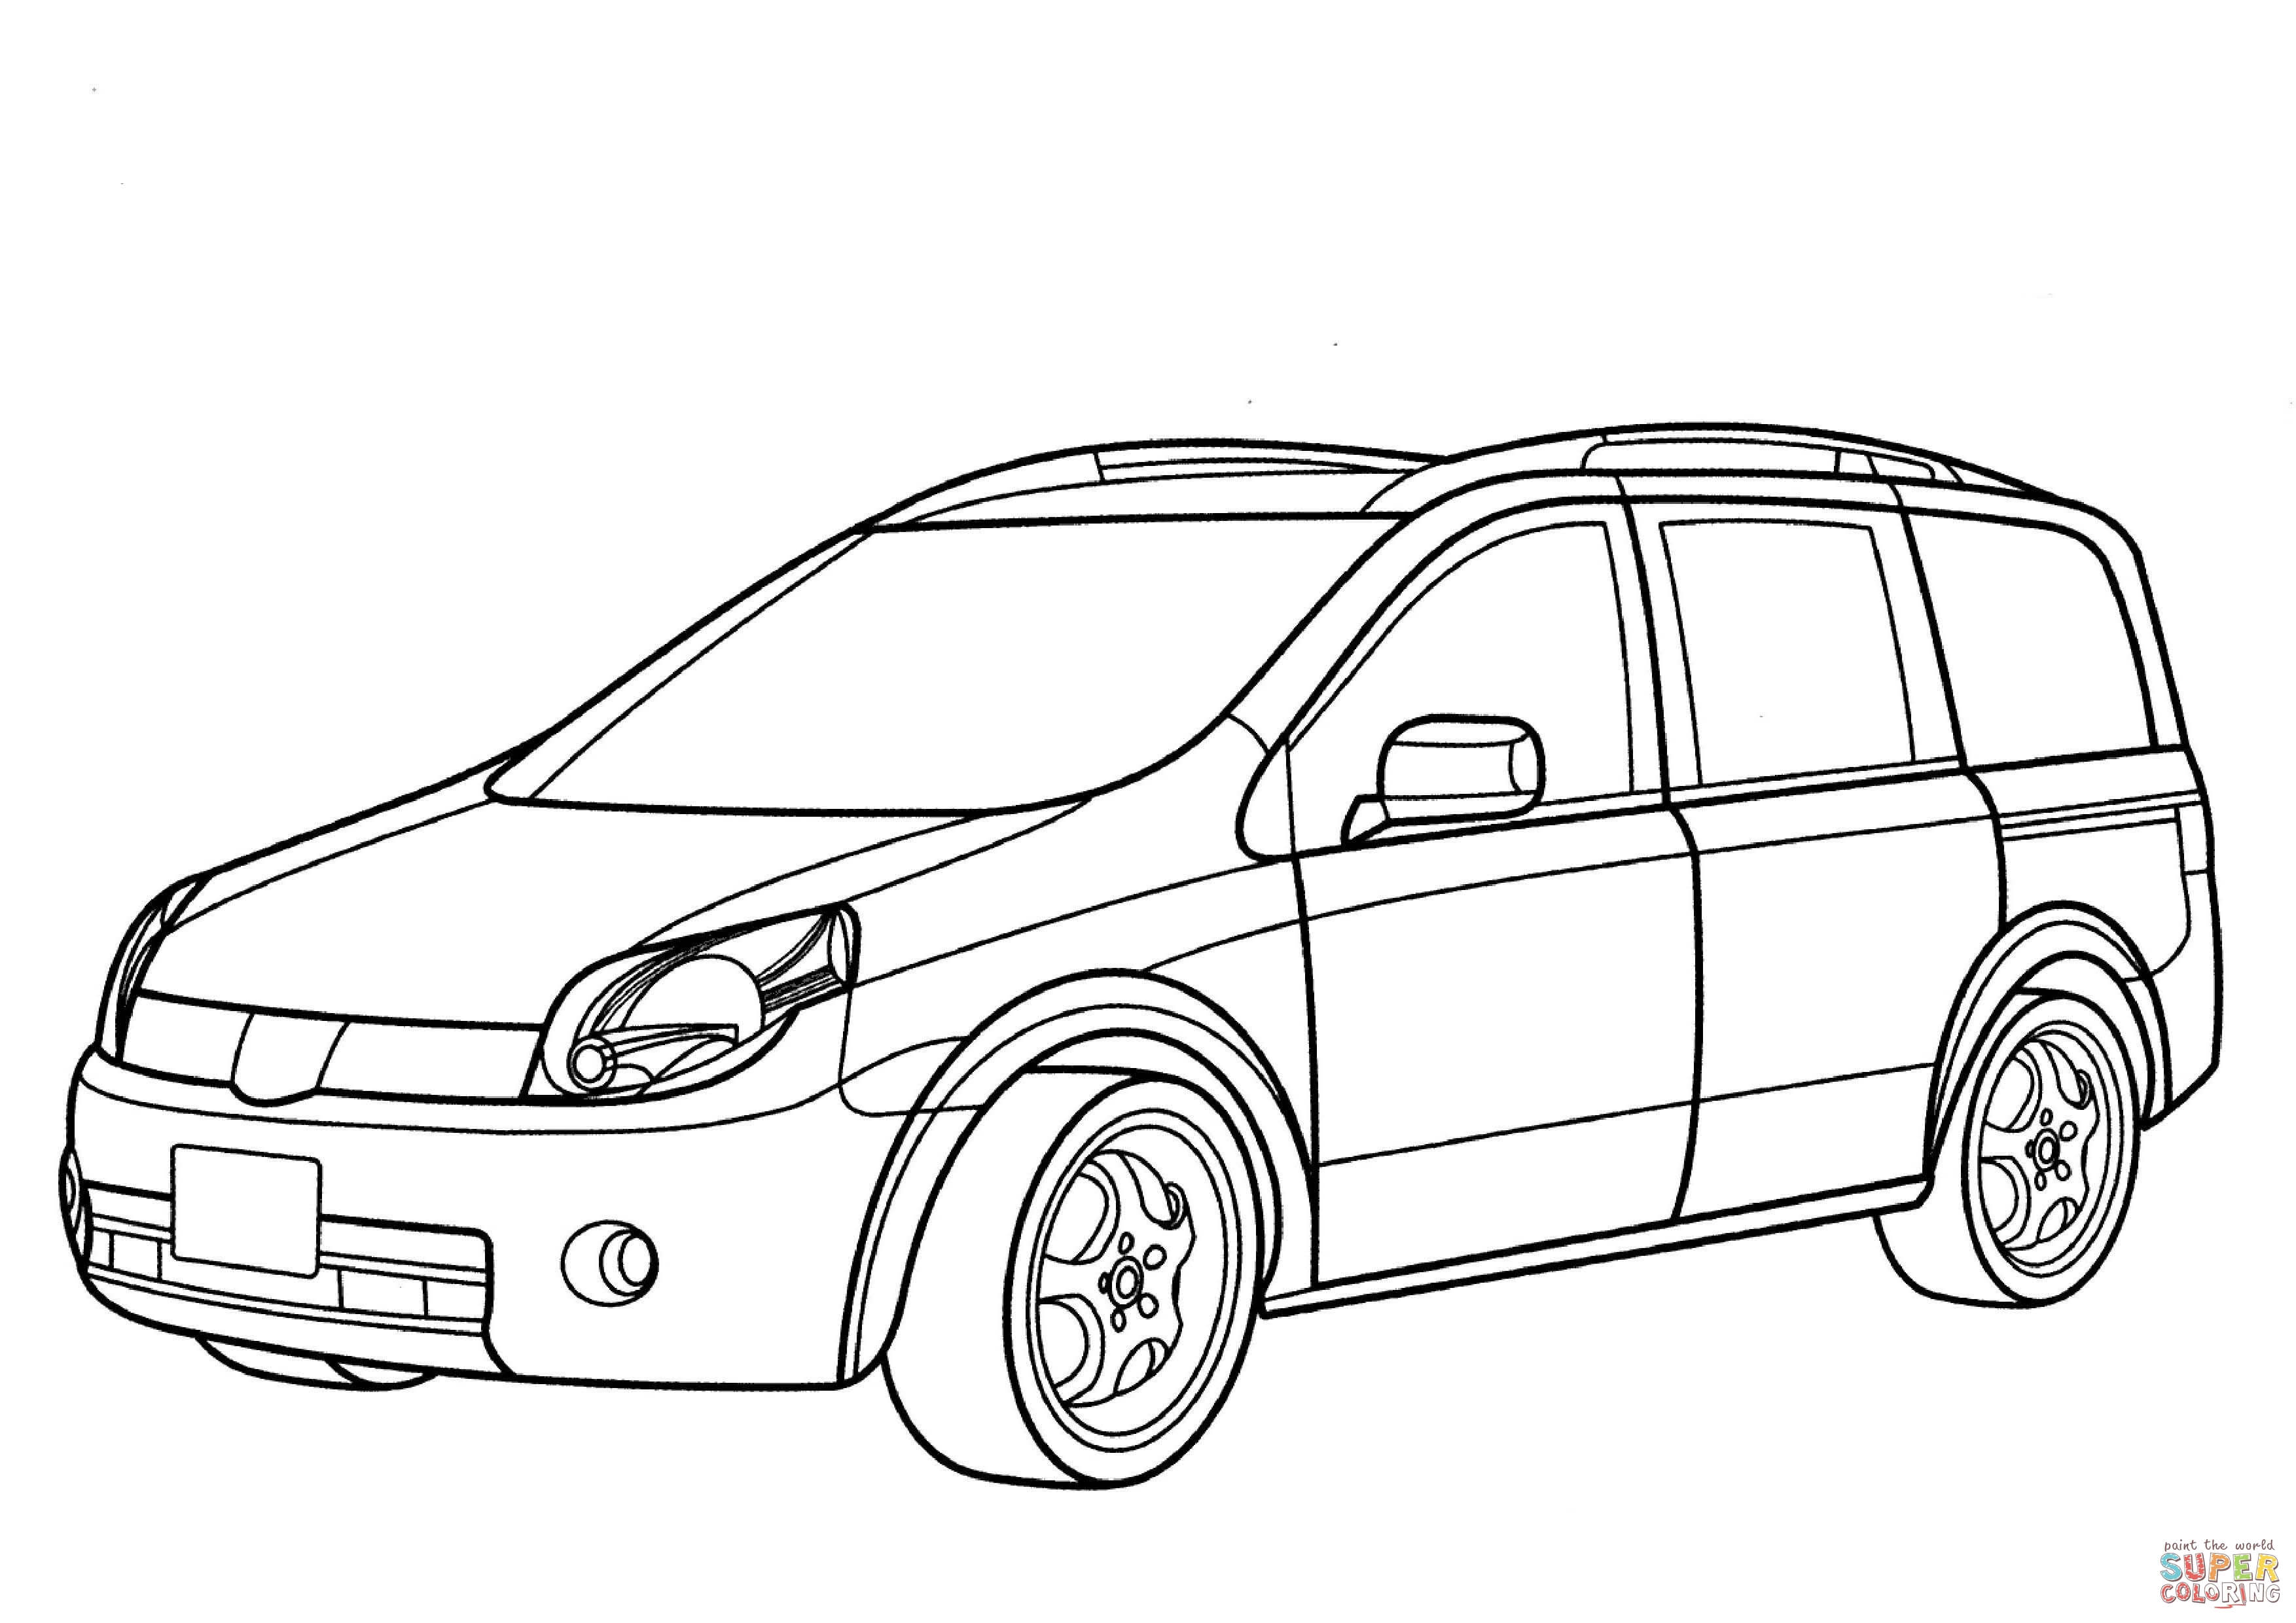 clipart transparent library  for free download. Minivan drawing